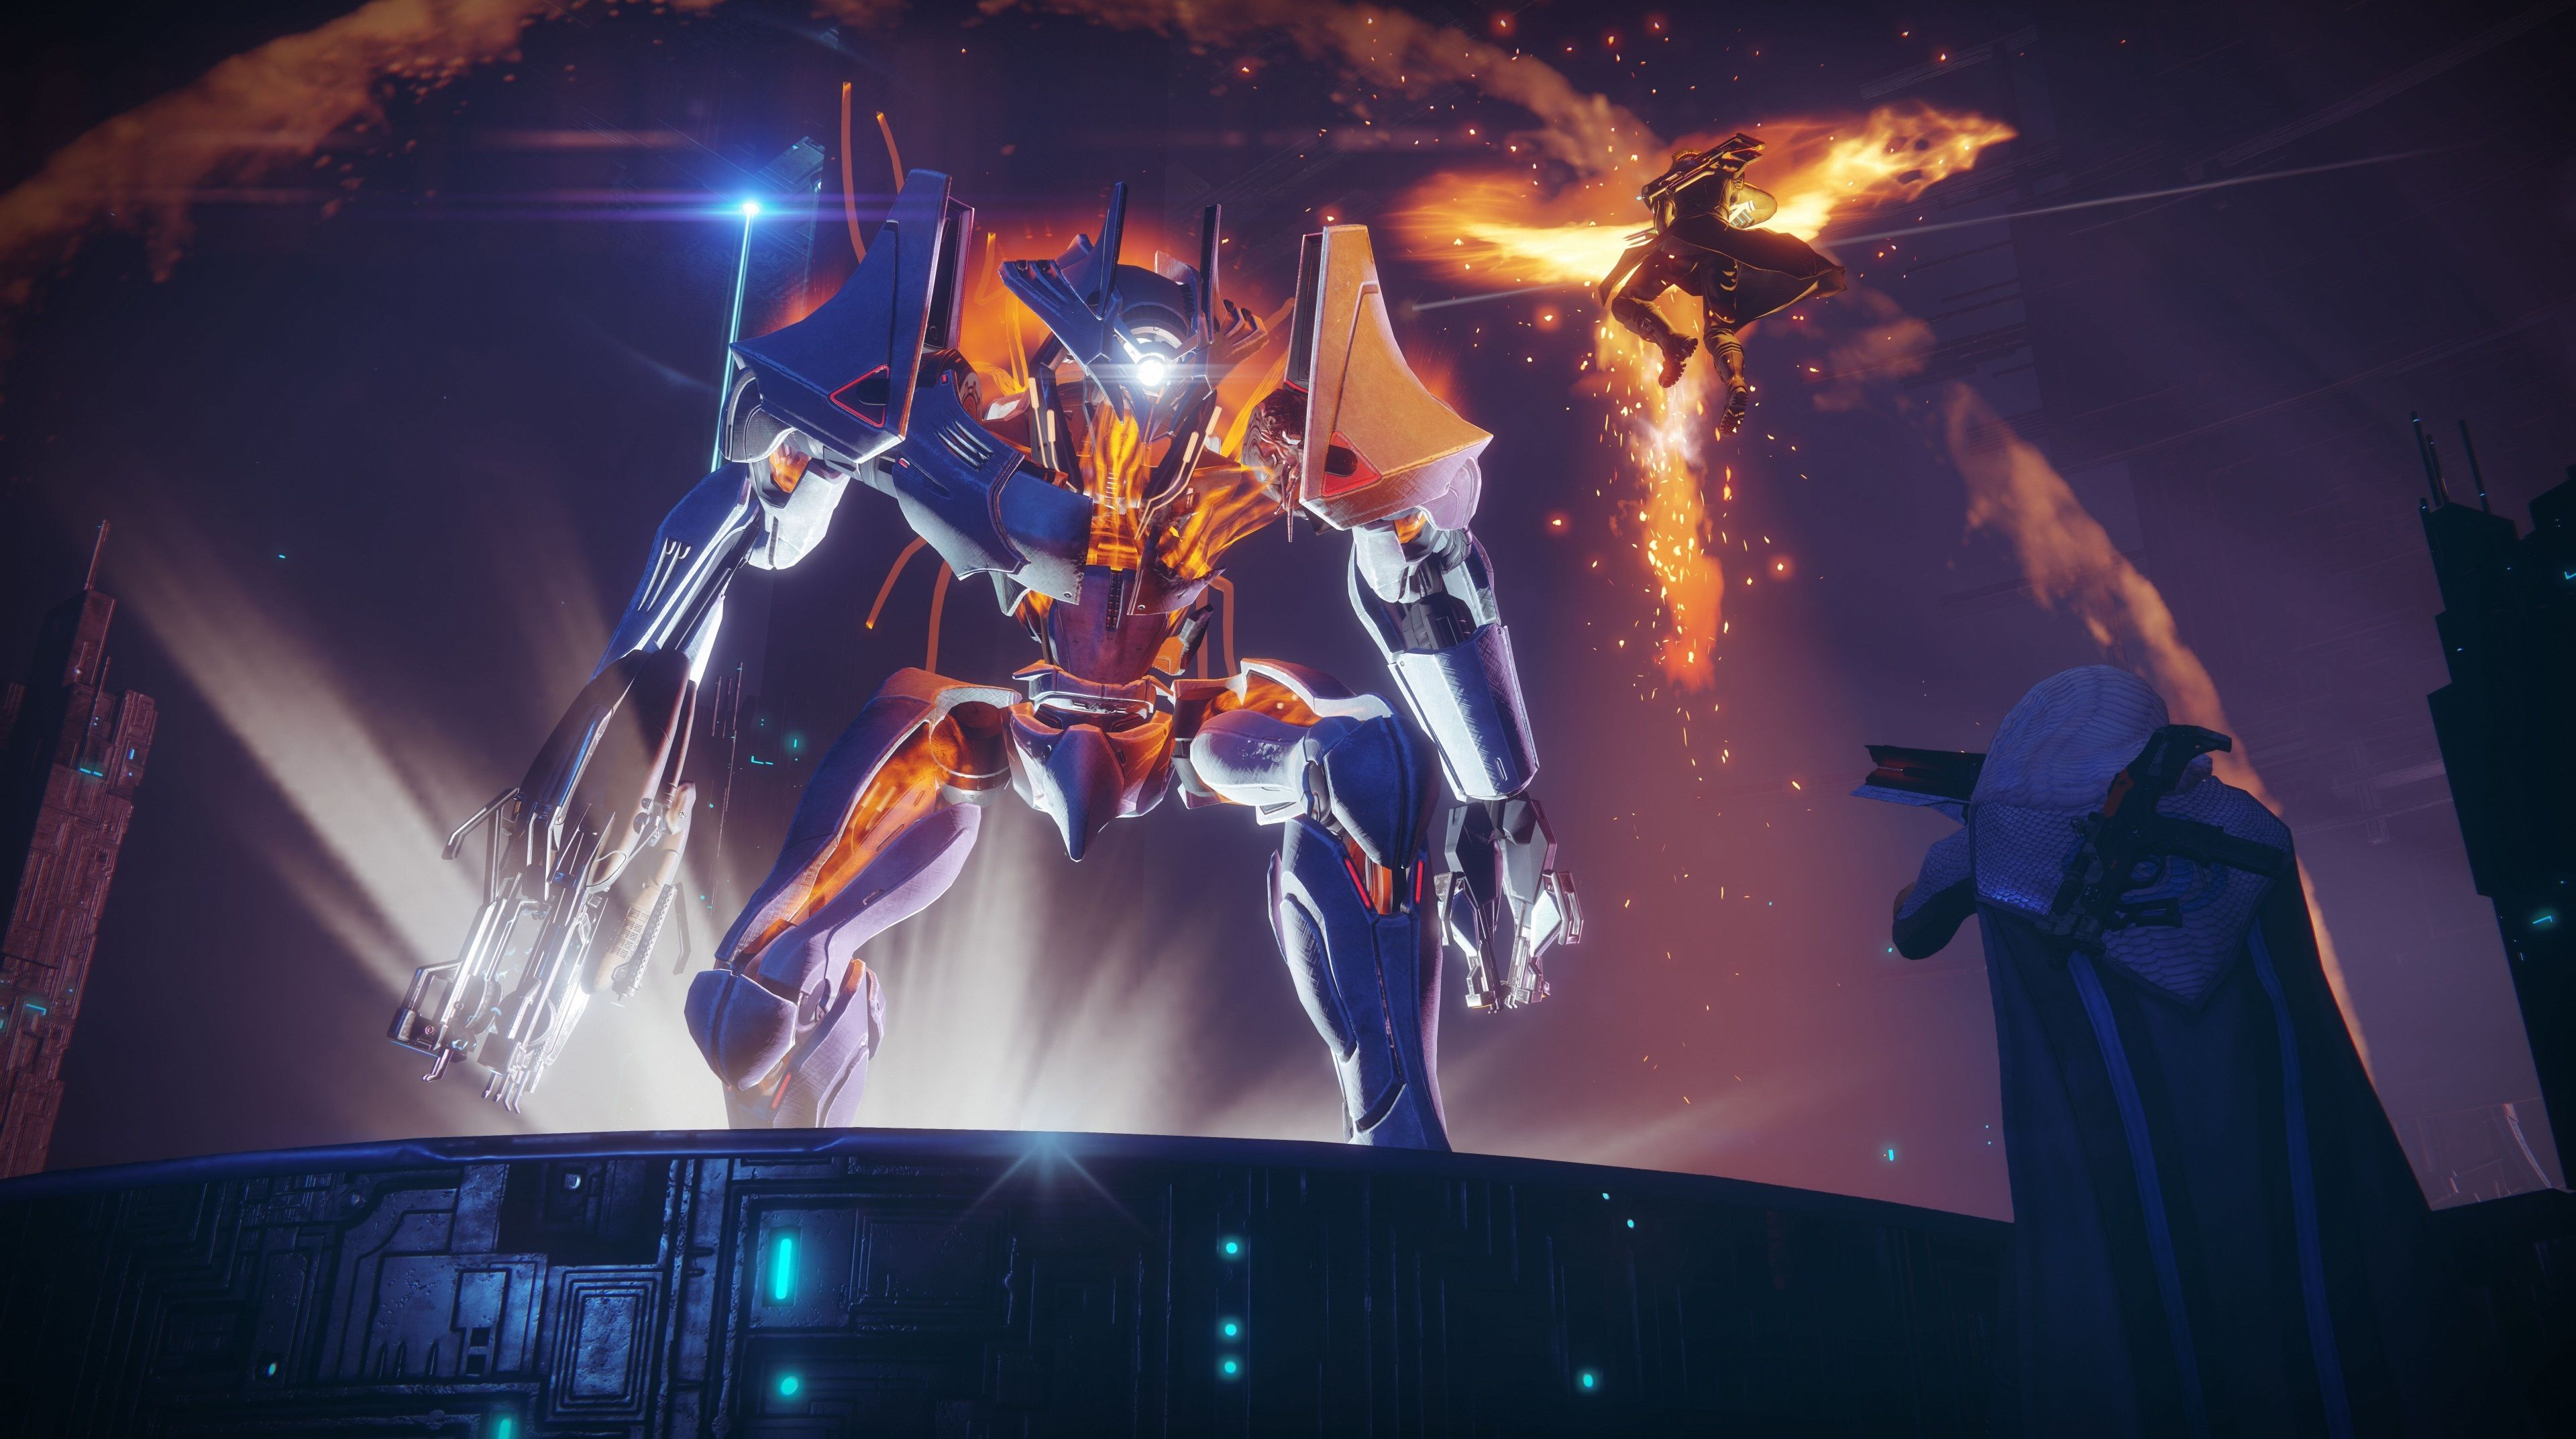 3840x2145 Destiny 2 4k Wallpaper High Resolution Destiny Game Destiny Bungie Destiny